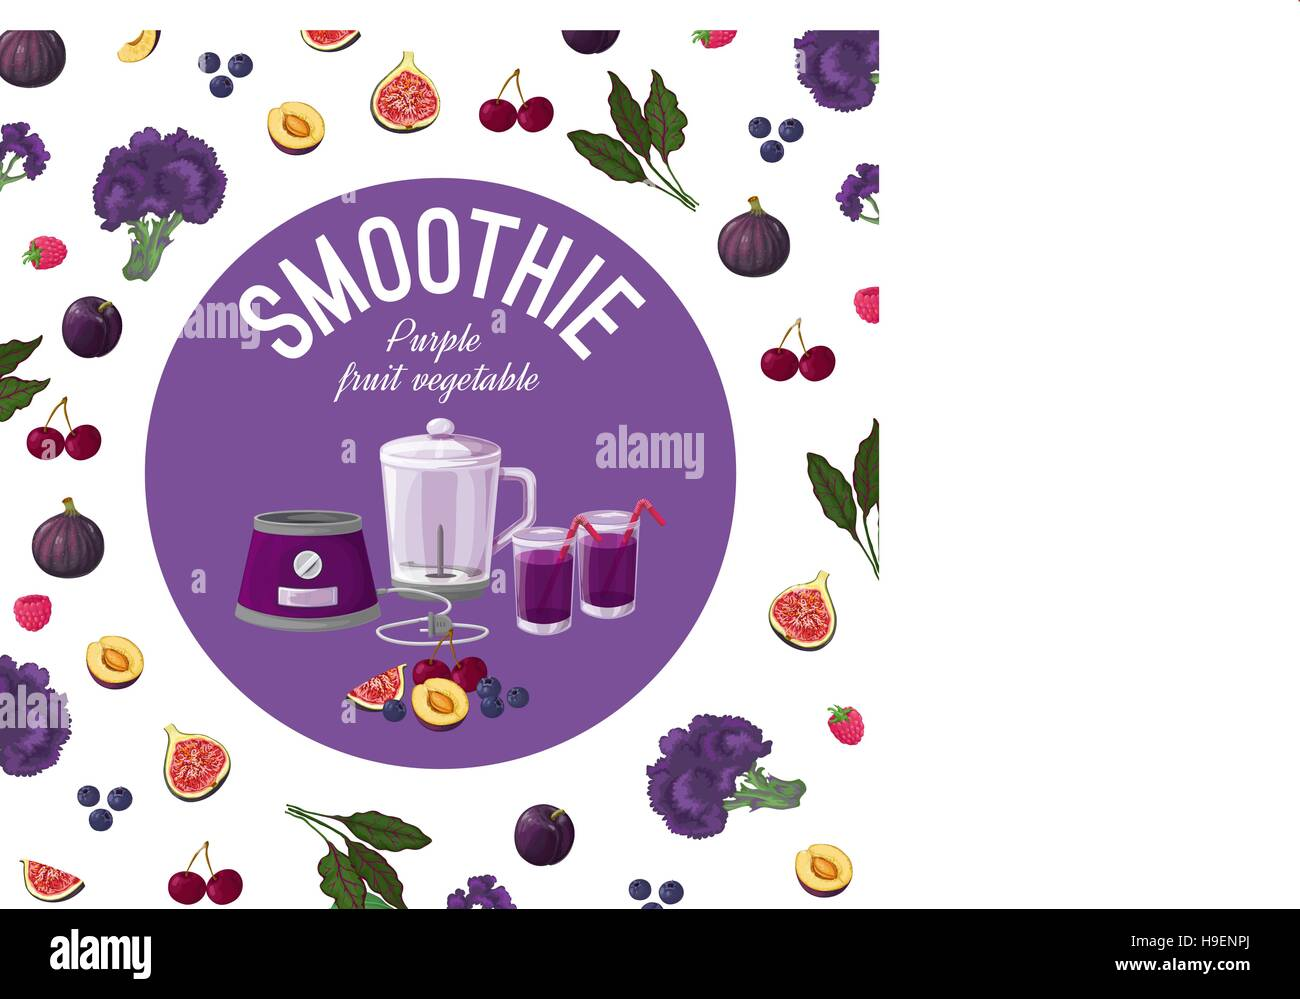 Smoothies. Purple vegetables. Vector illustration made in a realistic style. Stock Vector